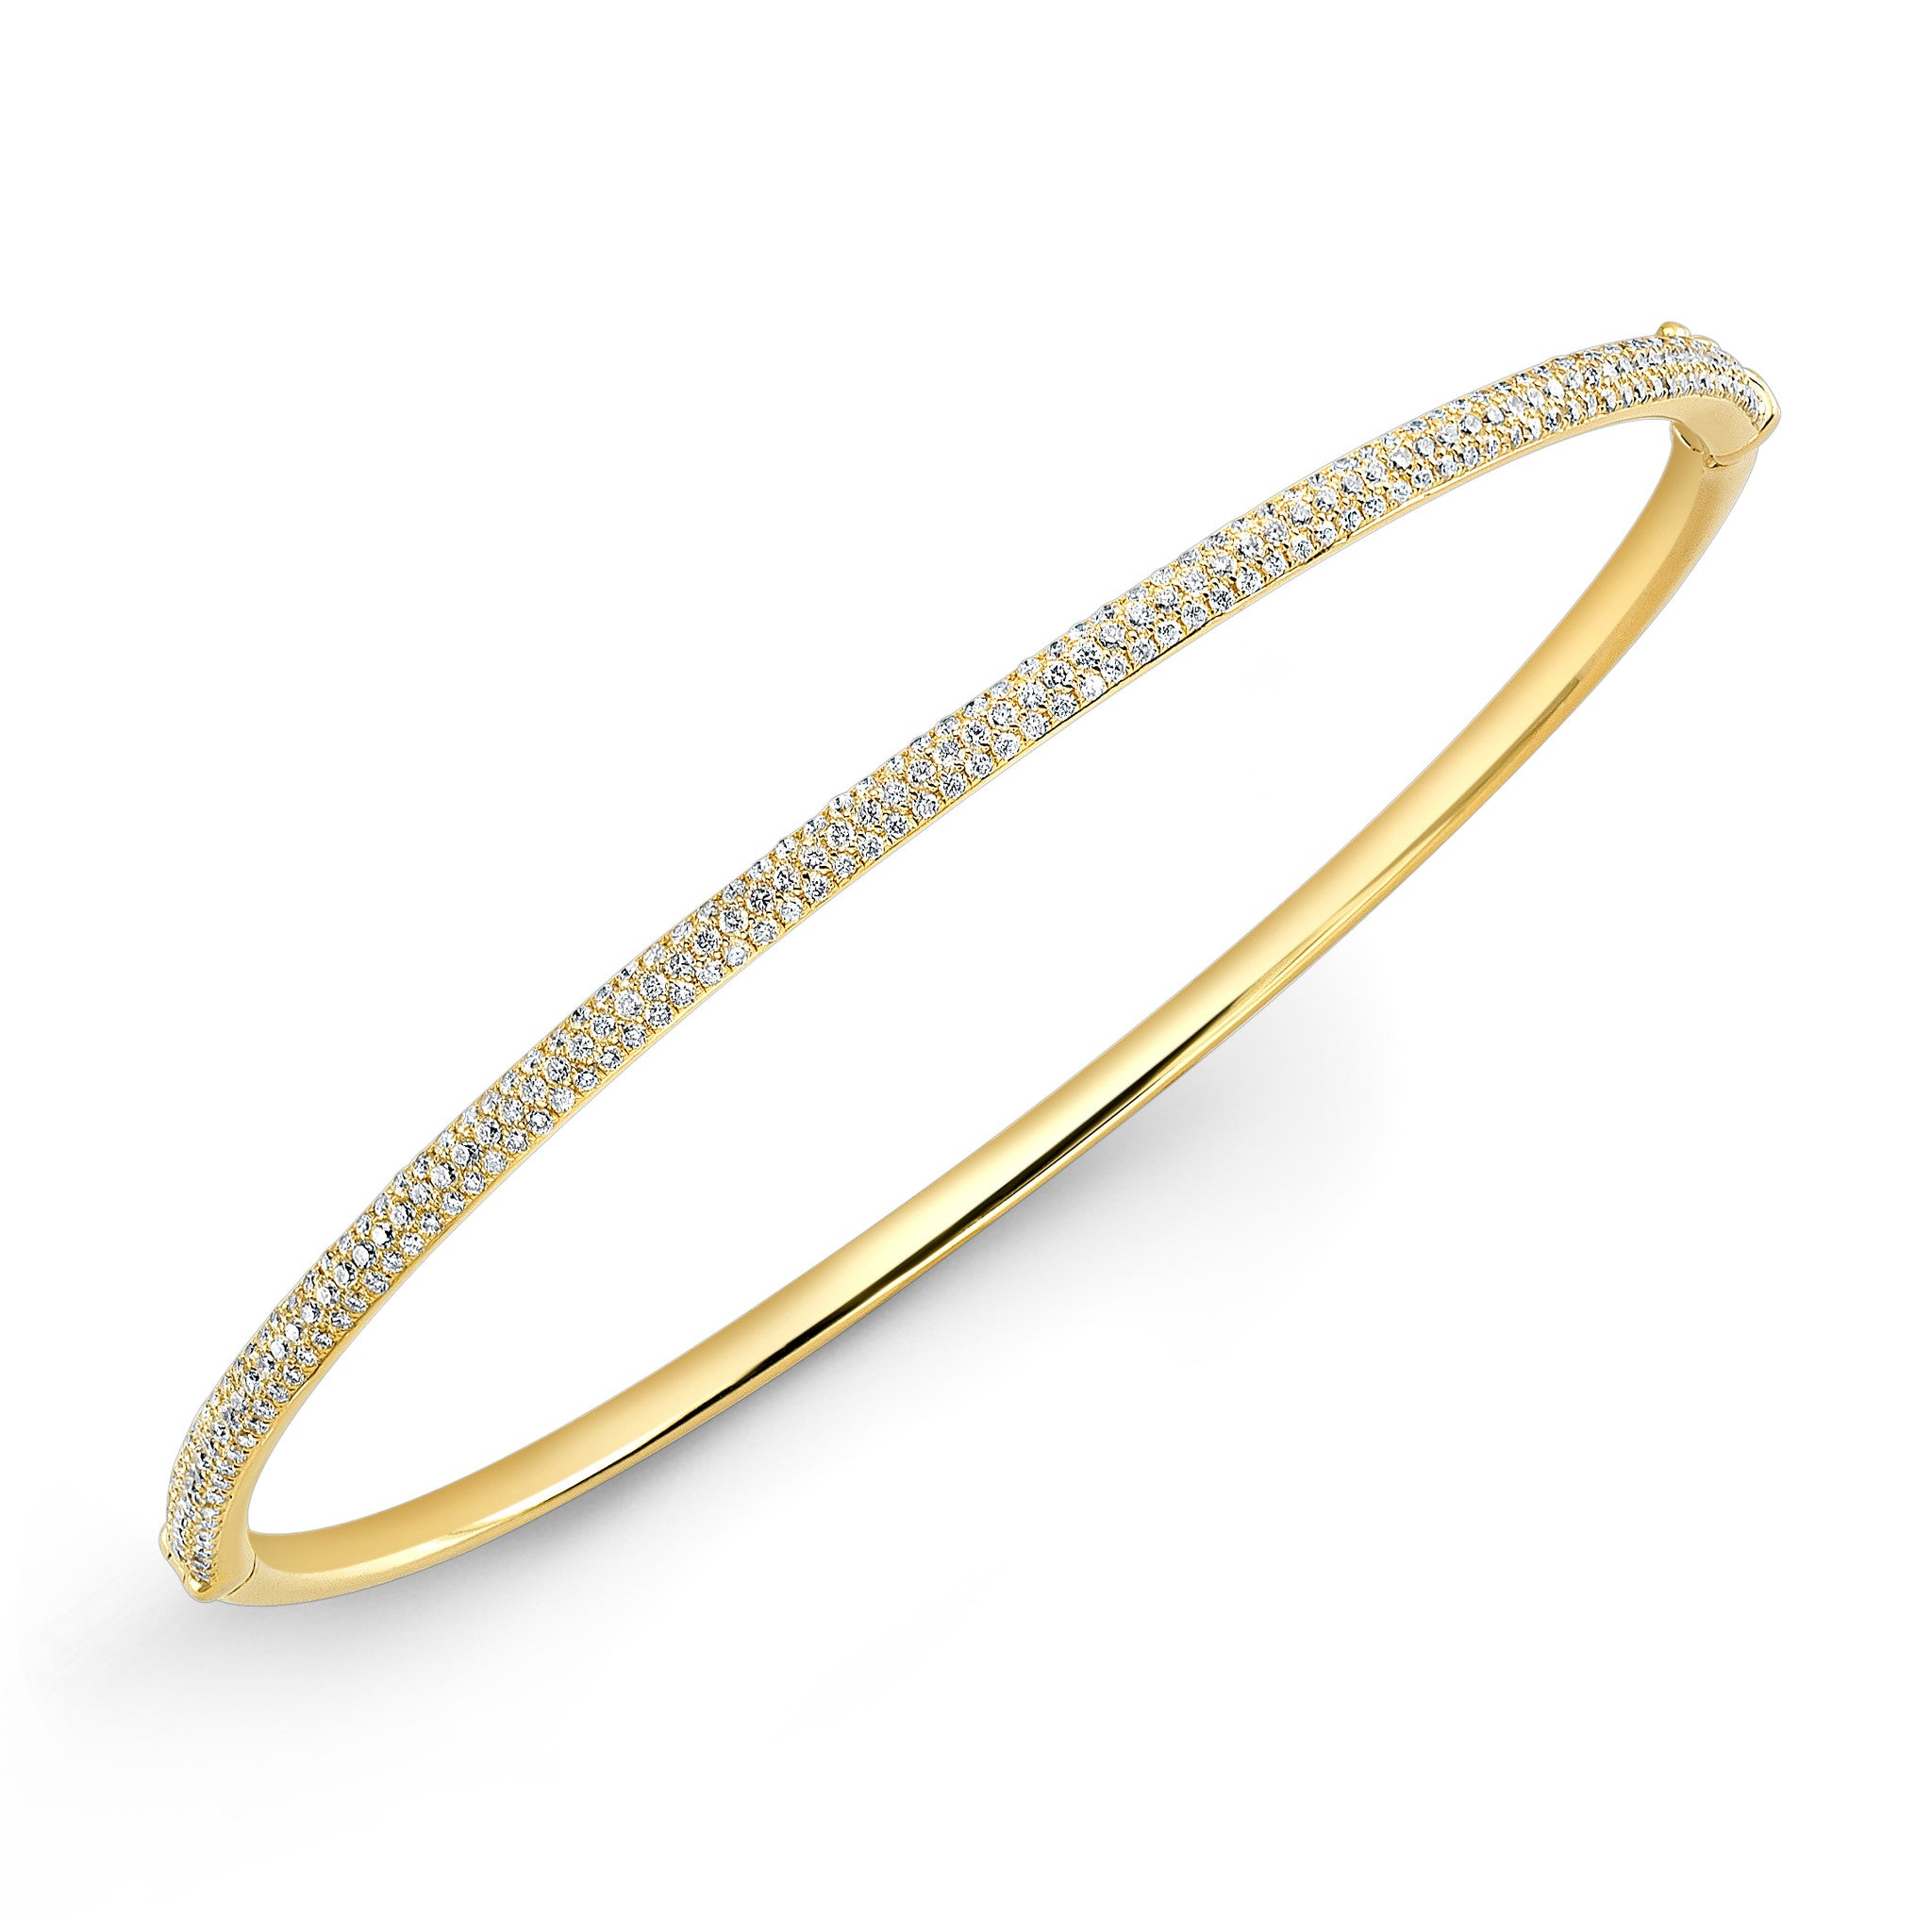 diamond bangle move bracelet medium messika joaillerie bangles pave